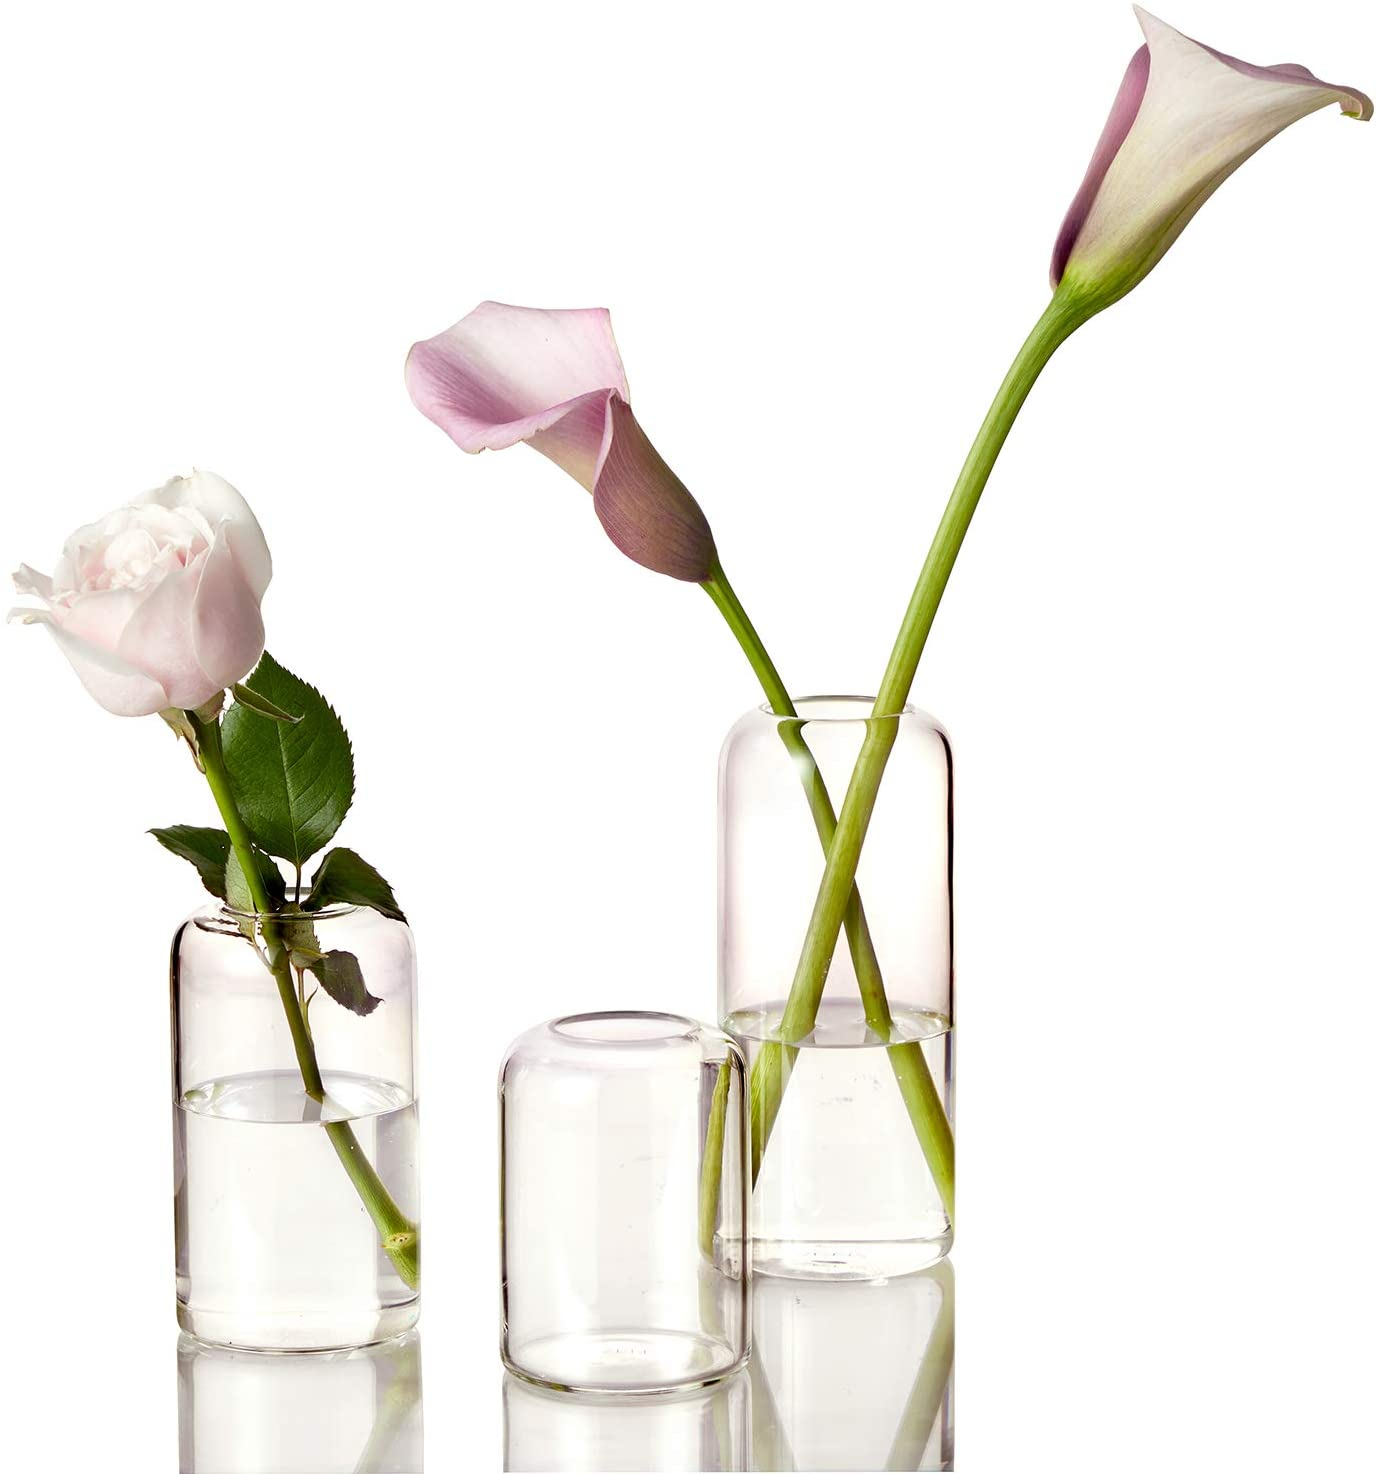 ZENS Bud Vases Glass Set, Clear Small Serene Spaces Living Vase Set of 3 for Centerpieces Home Decor, Modern Hand Blown Borosilicate Flowers Vases for Office or Wedding Events